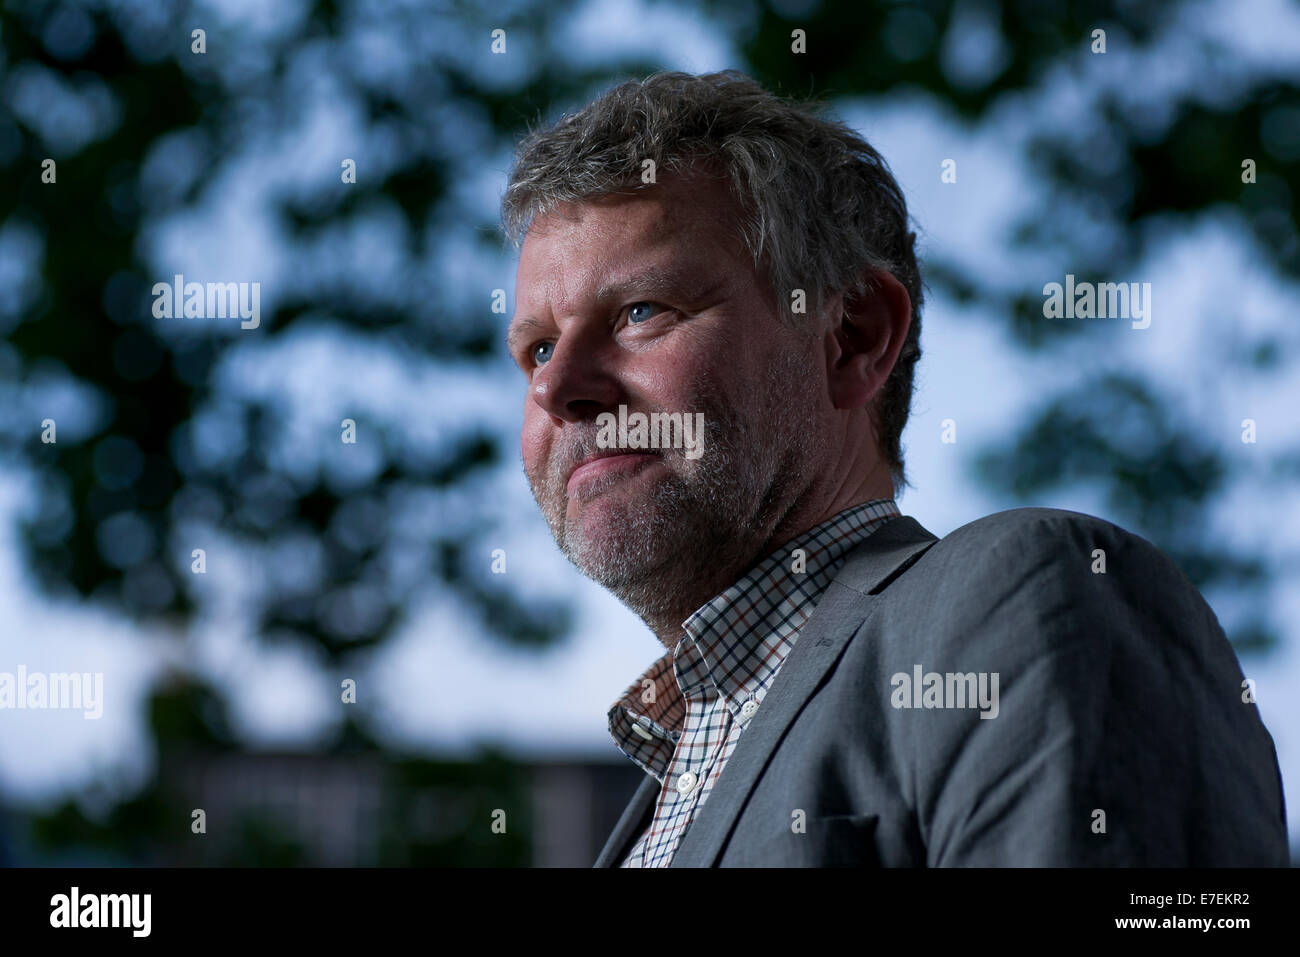 Jan Arnald is a Swedish novelist and literary critic appears at the Edinburgh Book Festival. Also writes as Arne Stock Photo